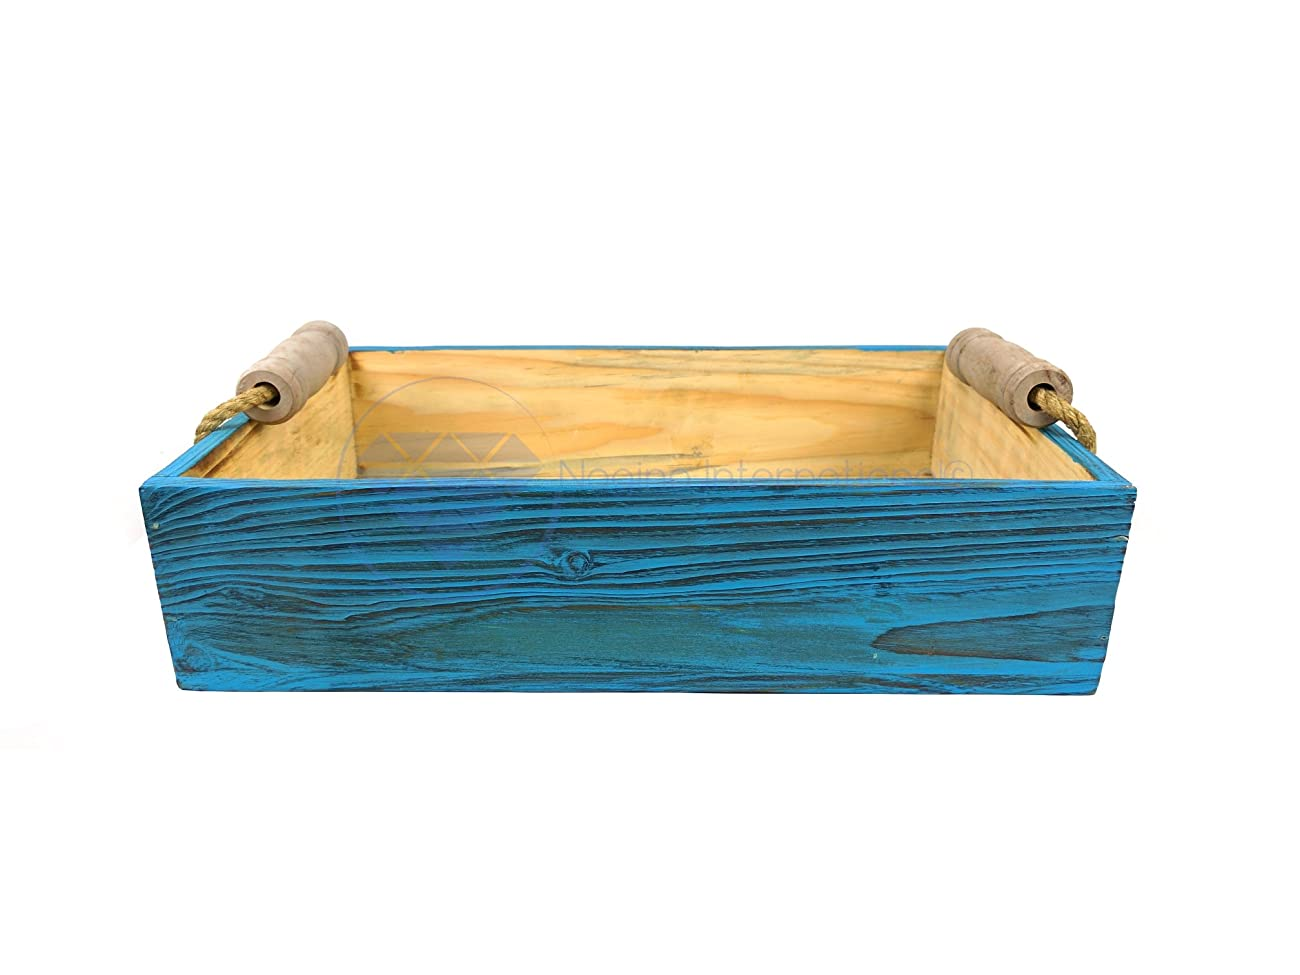 Vintage Rustic Wooden Crate Trays with Rope Handles- Set of 3 - Pirate Home Decor Gift - Nagina International 1